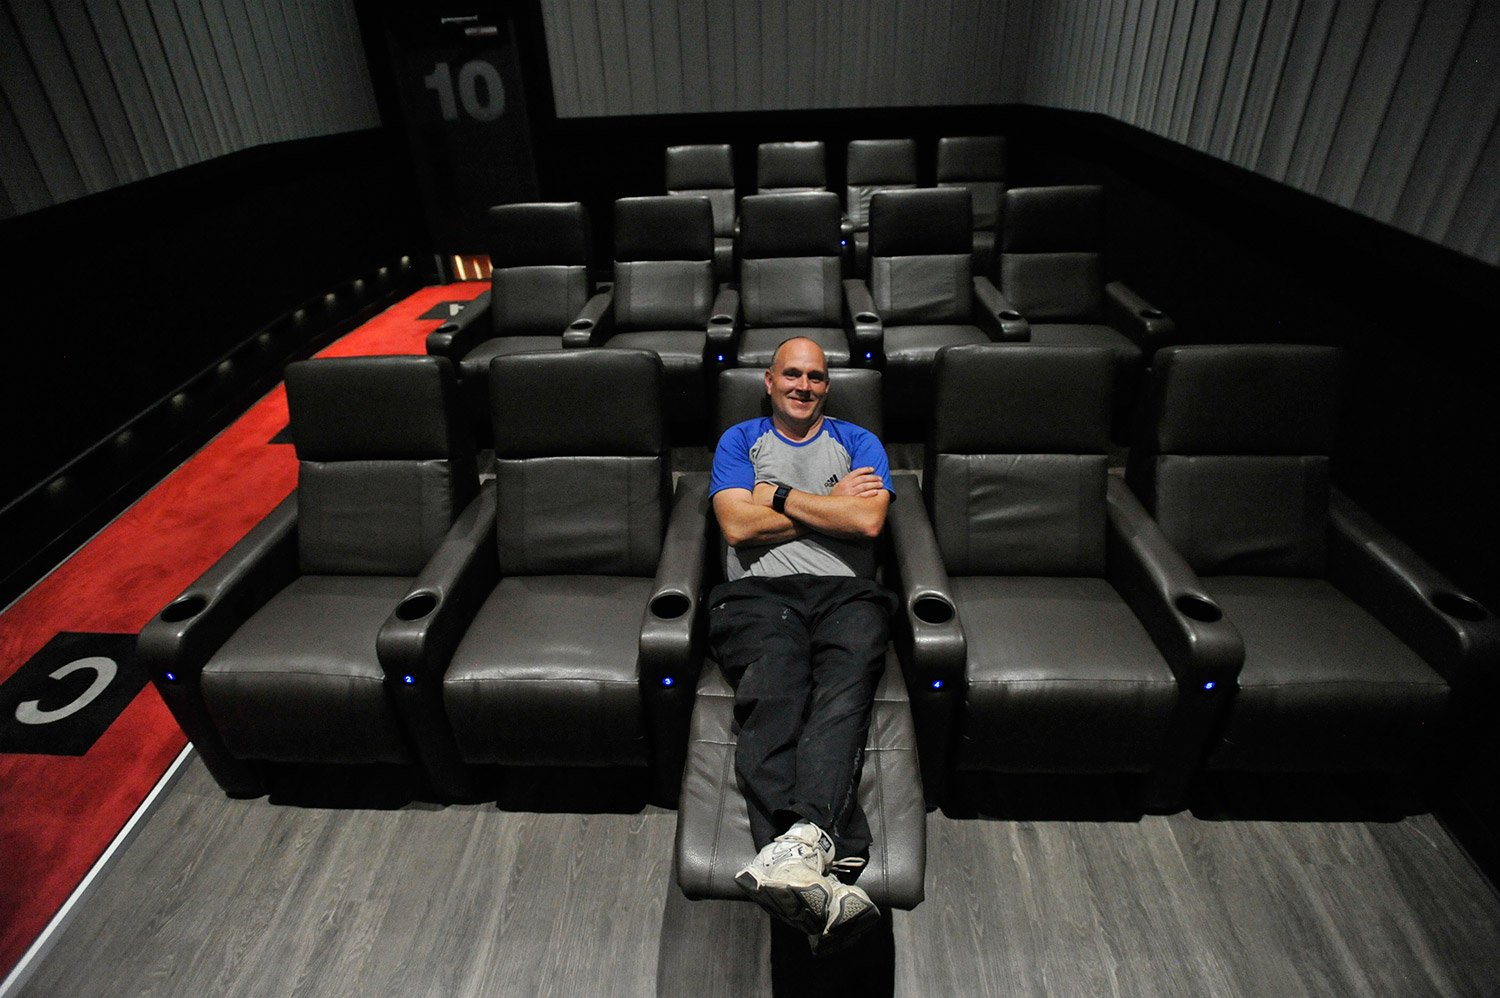 Patrons sit back (literally) at Flagship cinema in Falmouth